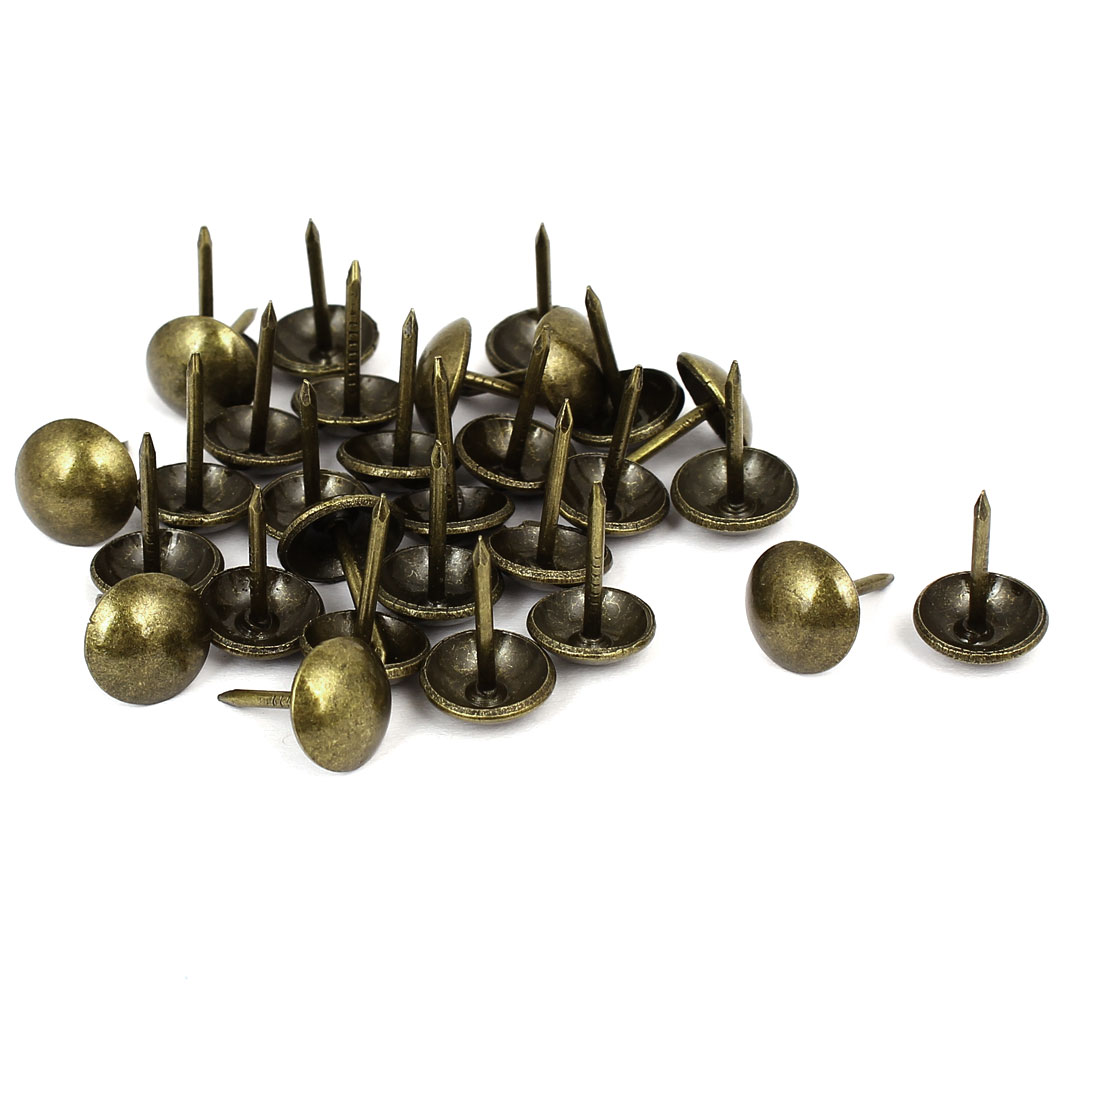 "Household Metal Domed Head Upholstery Tack Nail Bronze Tone 7/16"" Dia 30pcs"